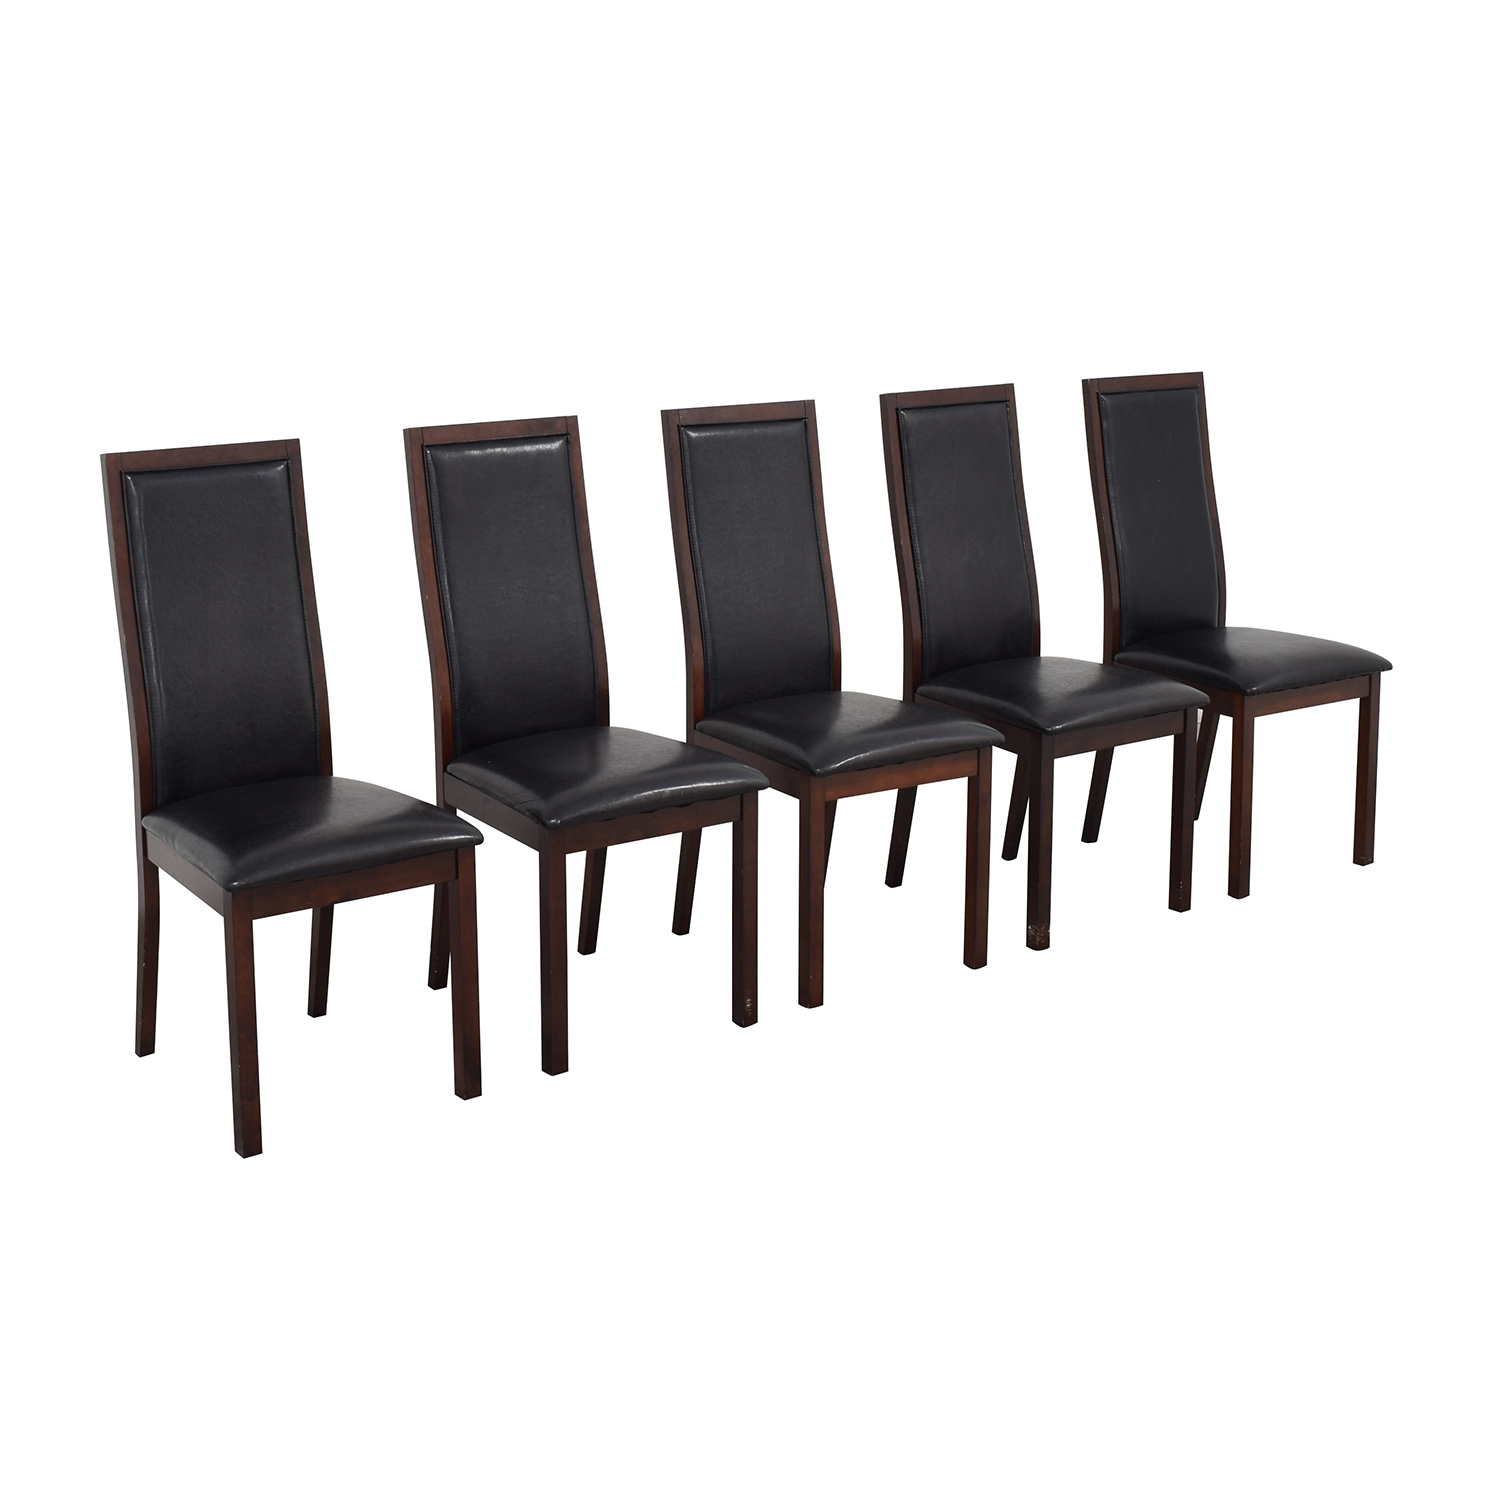 Coaster Dining Chairs / Dining Chairs